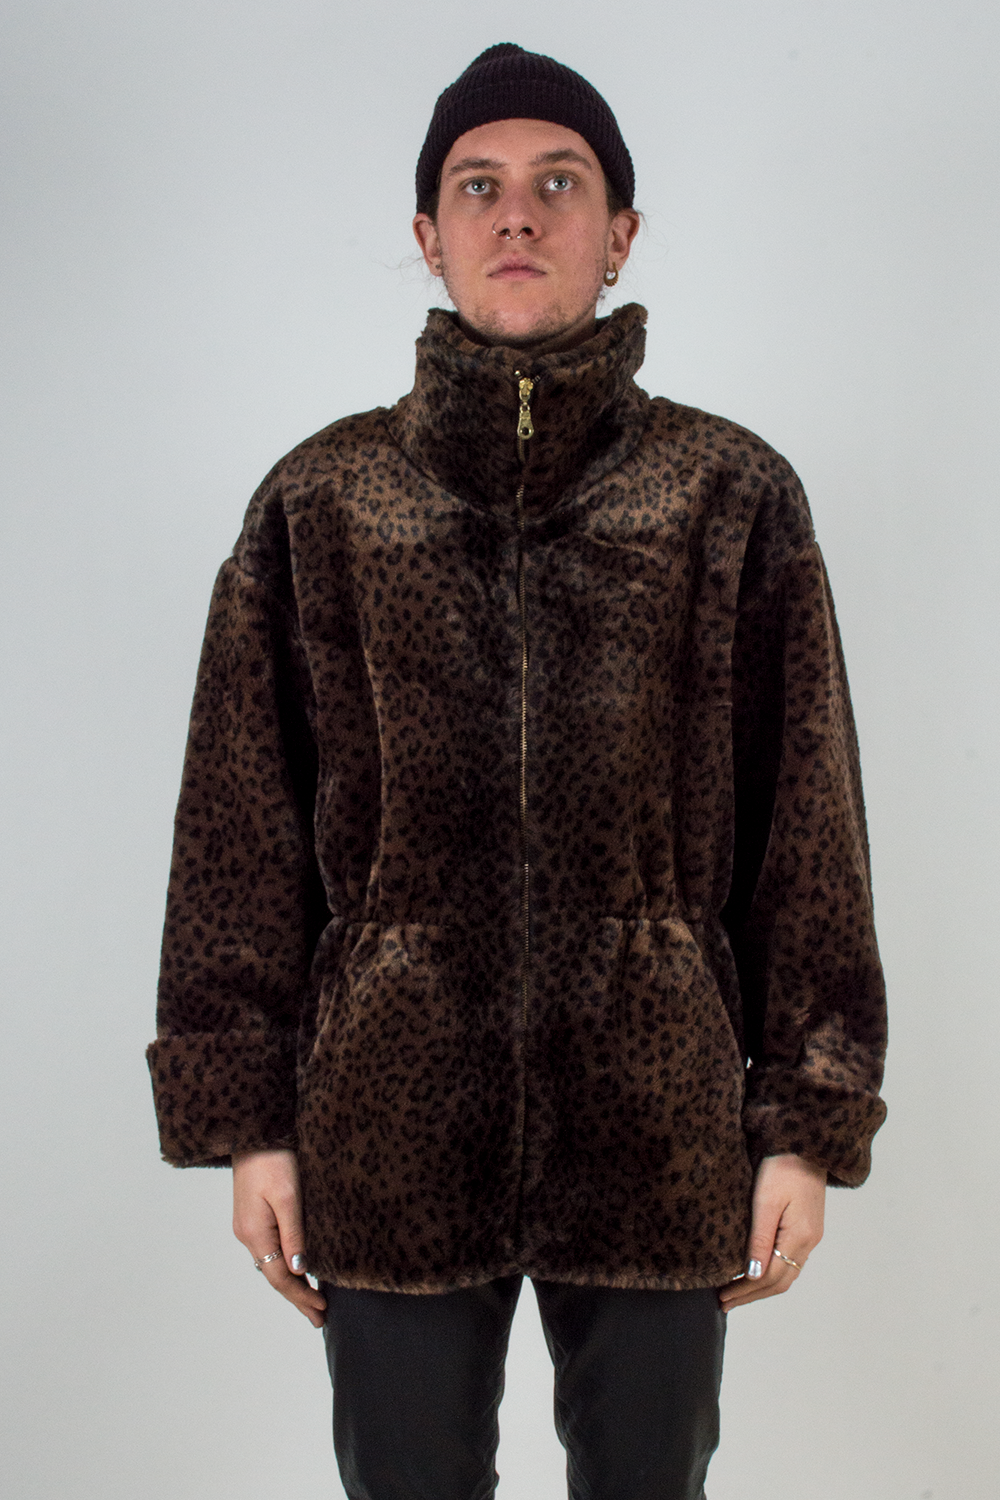 vintage faux fur shearling coat in cheetah print